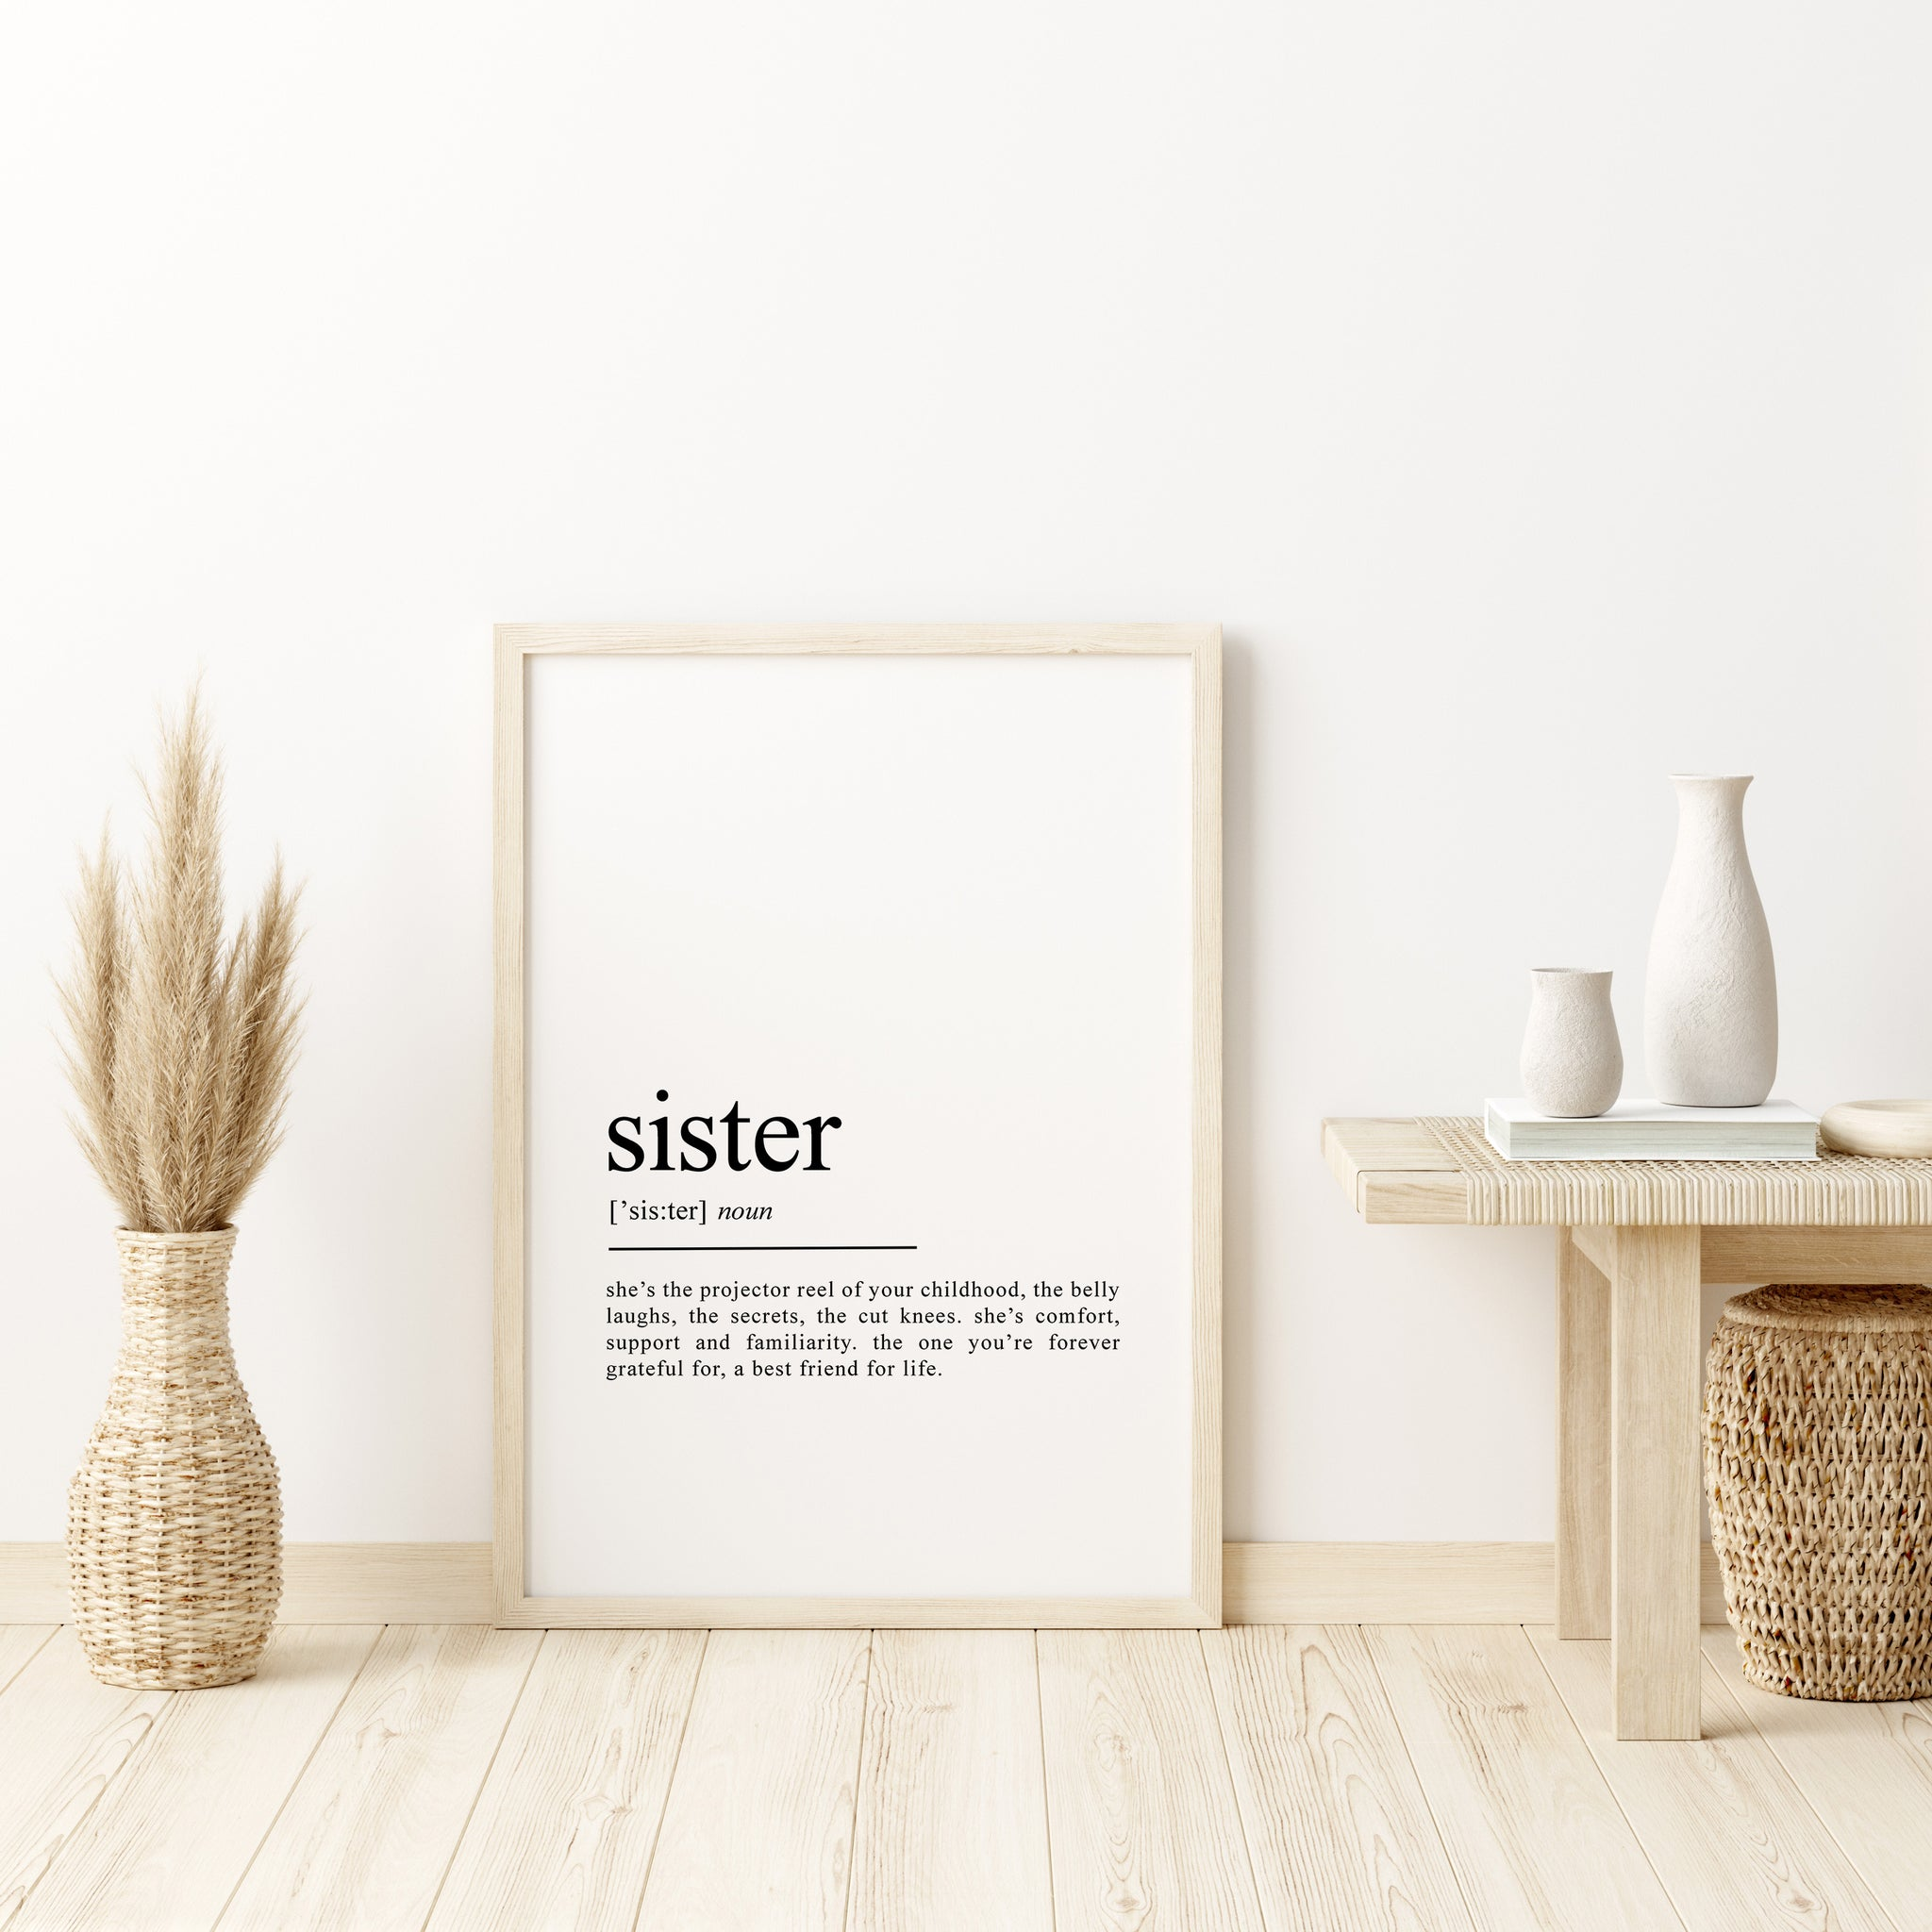 Sister Definition Word Wall Art | Sister Print Gift | Love | Special person present